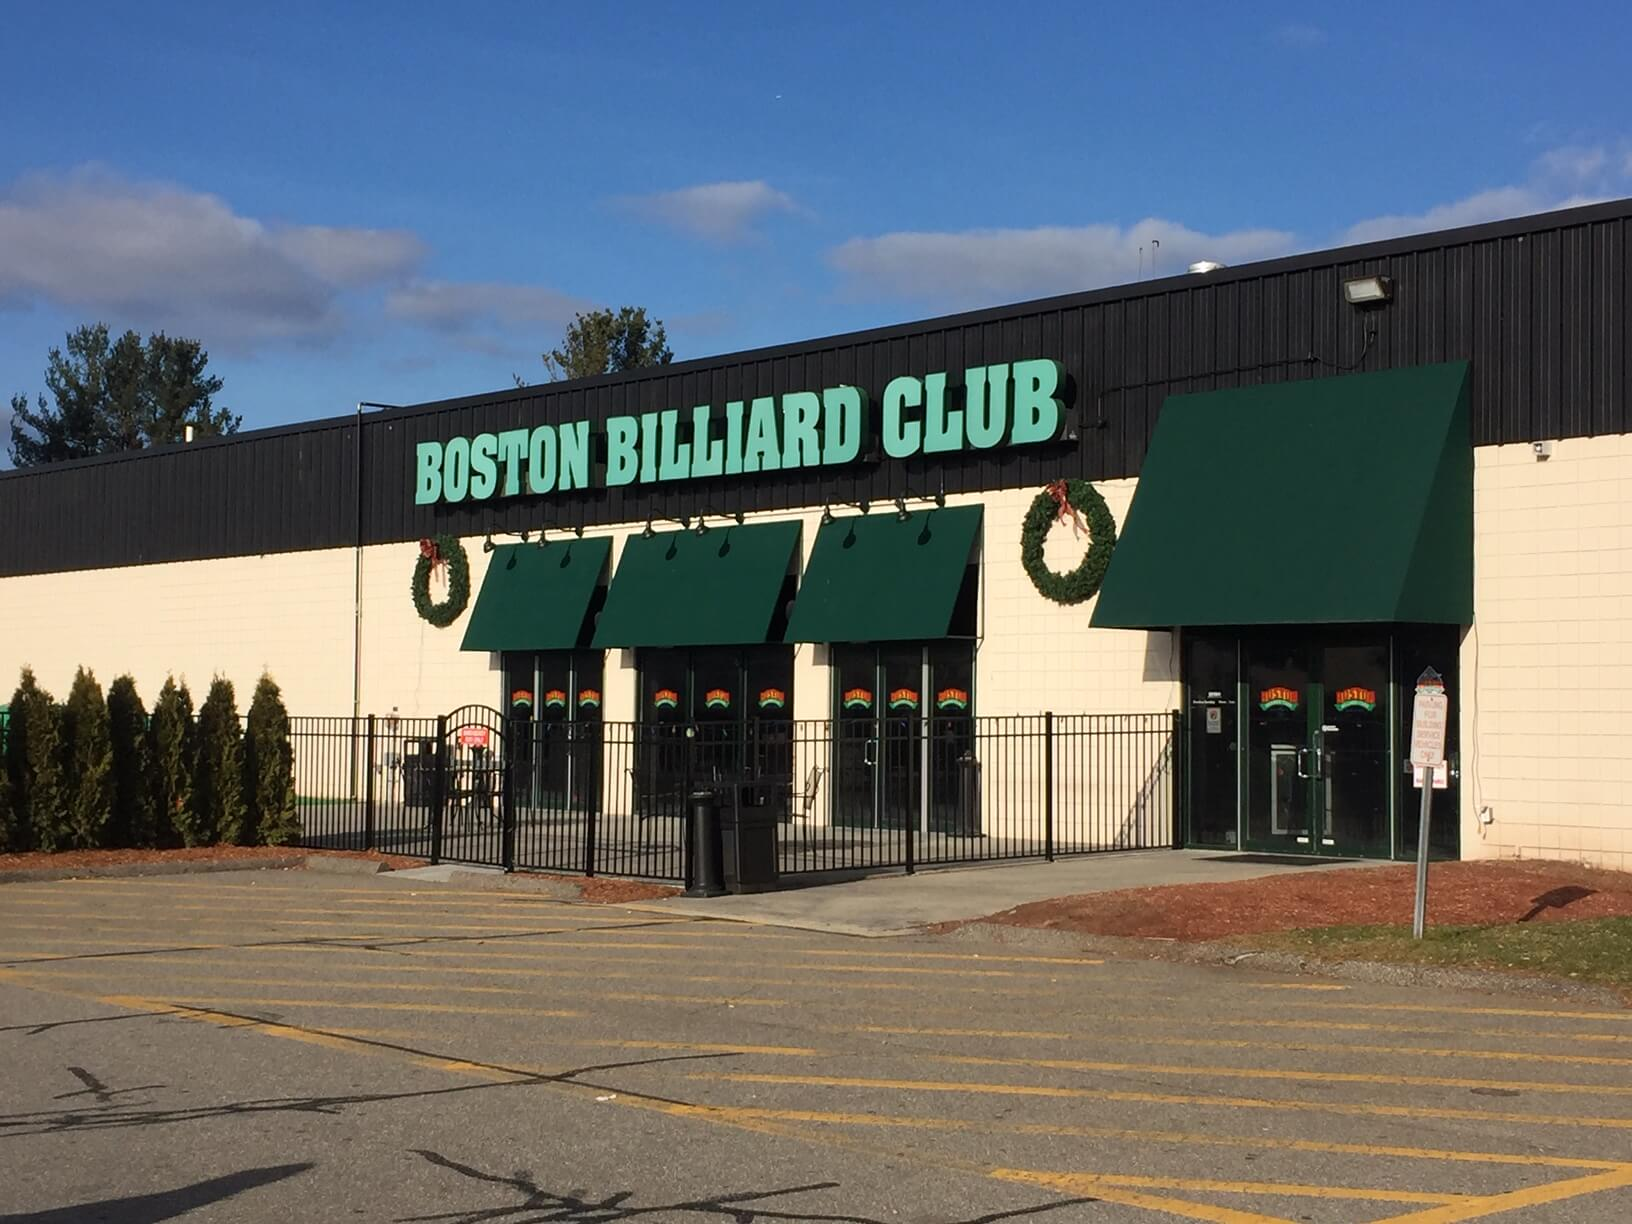 Boston Billiard Poker Room Entrance